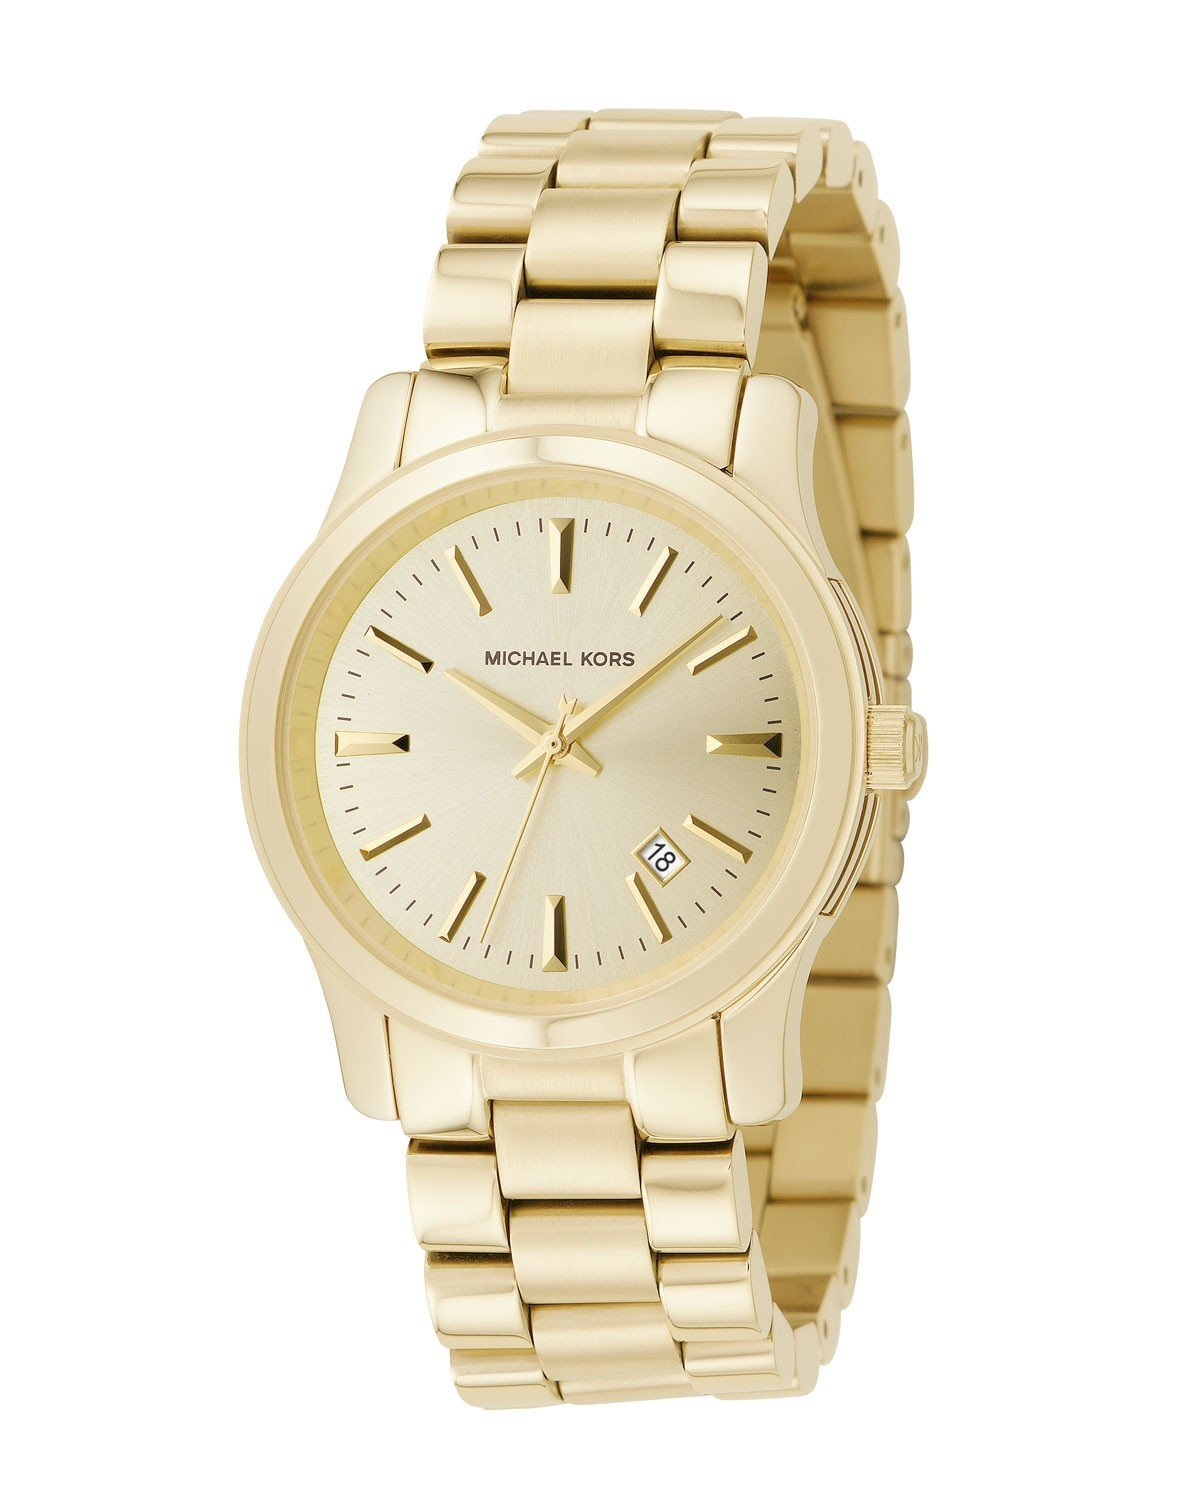 Amazon.com: Michael Kors Women's MK5160 3 Hand Runway Watch: Michael Kors: Watches